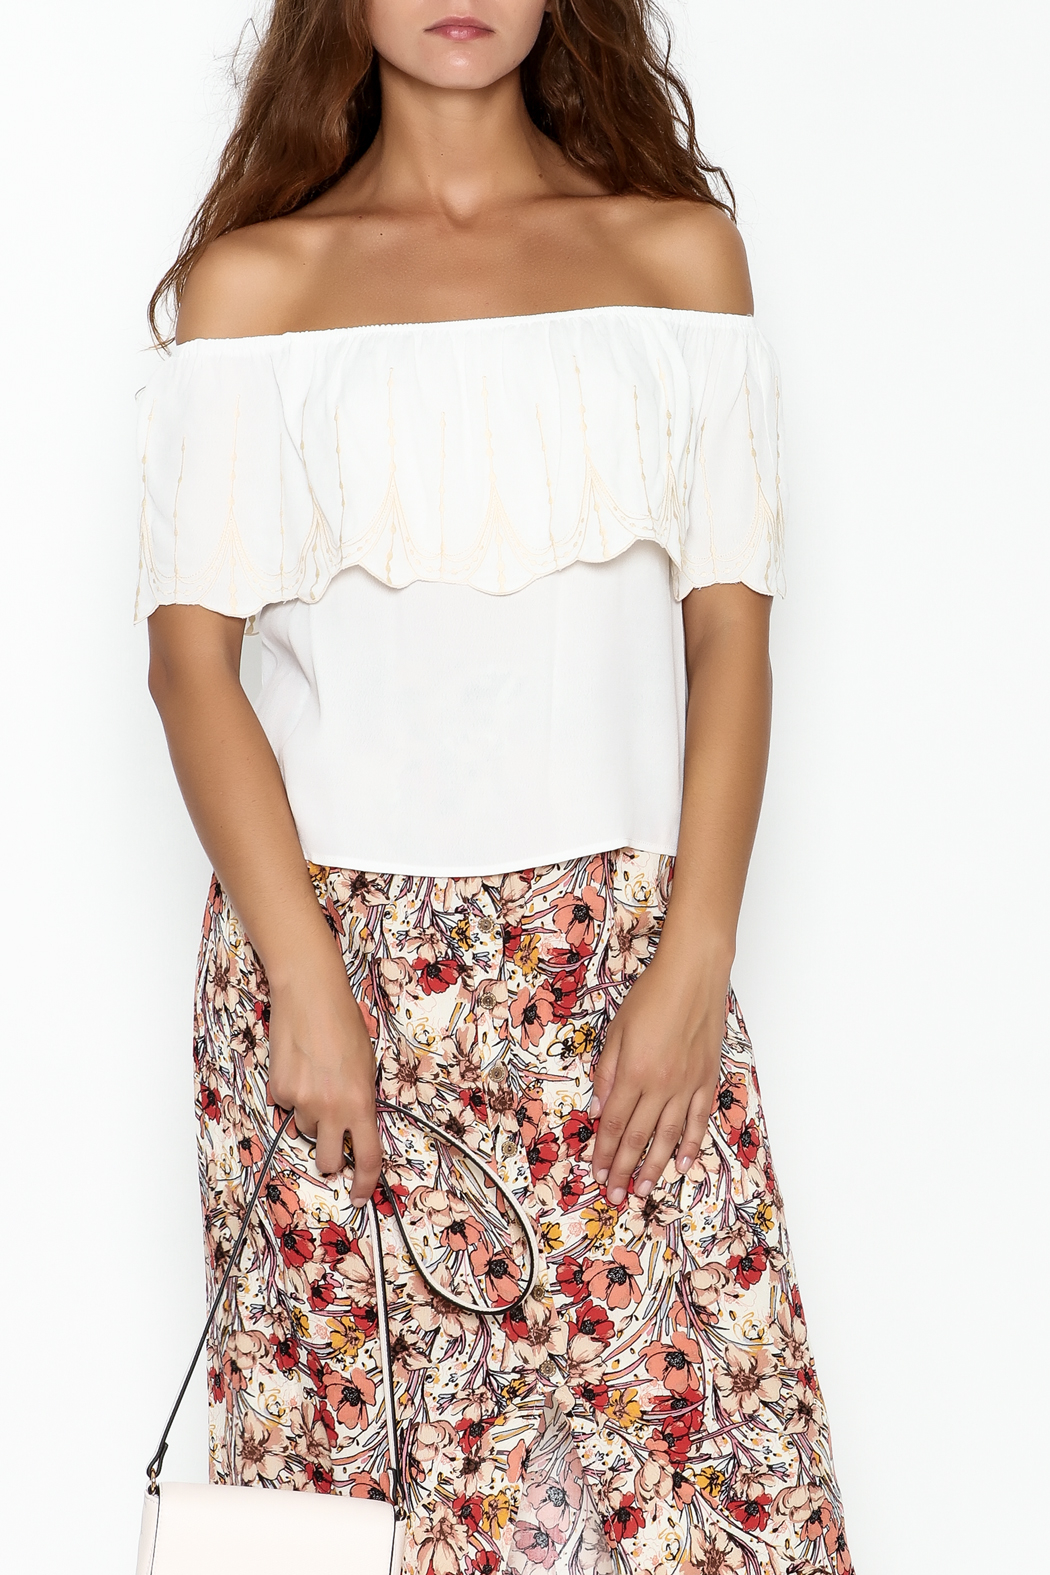 y&i clothing boutique Reese Scallop Top - Main Image